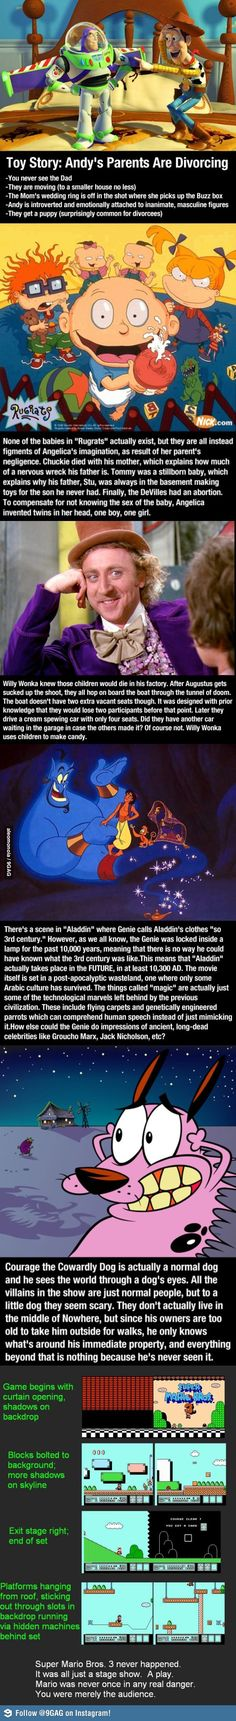 My childhood has just been ruined. That's pretty interesting though.